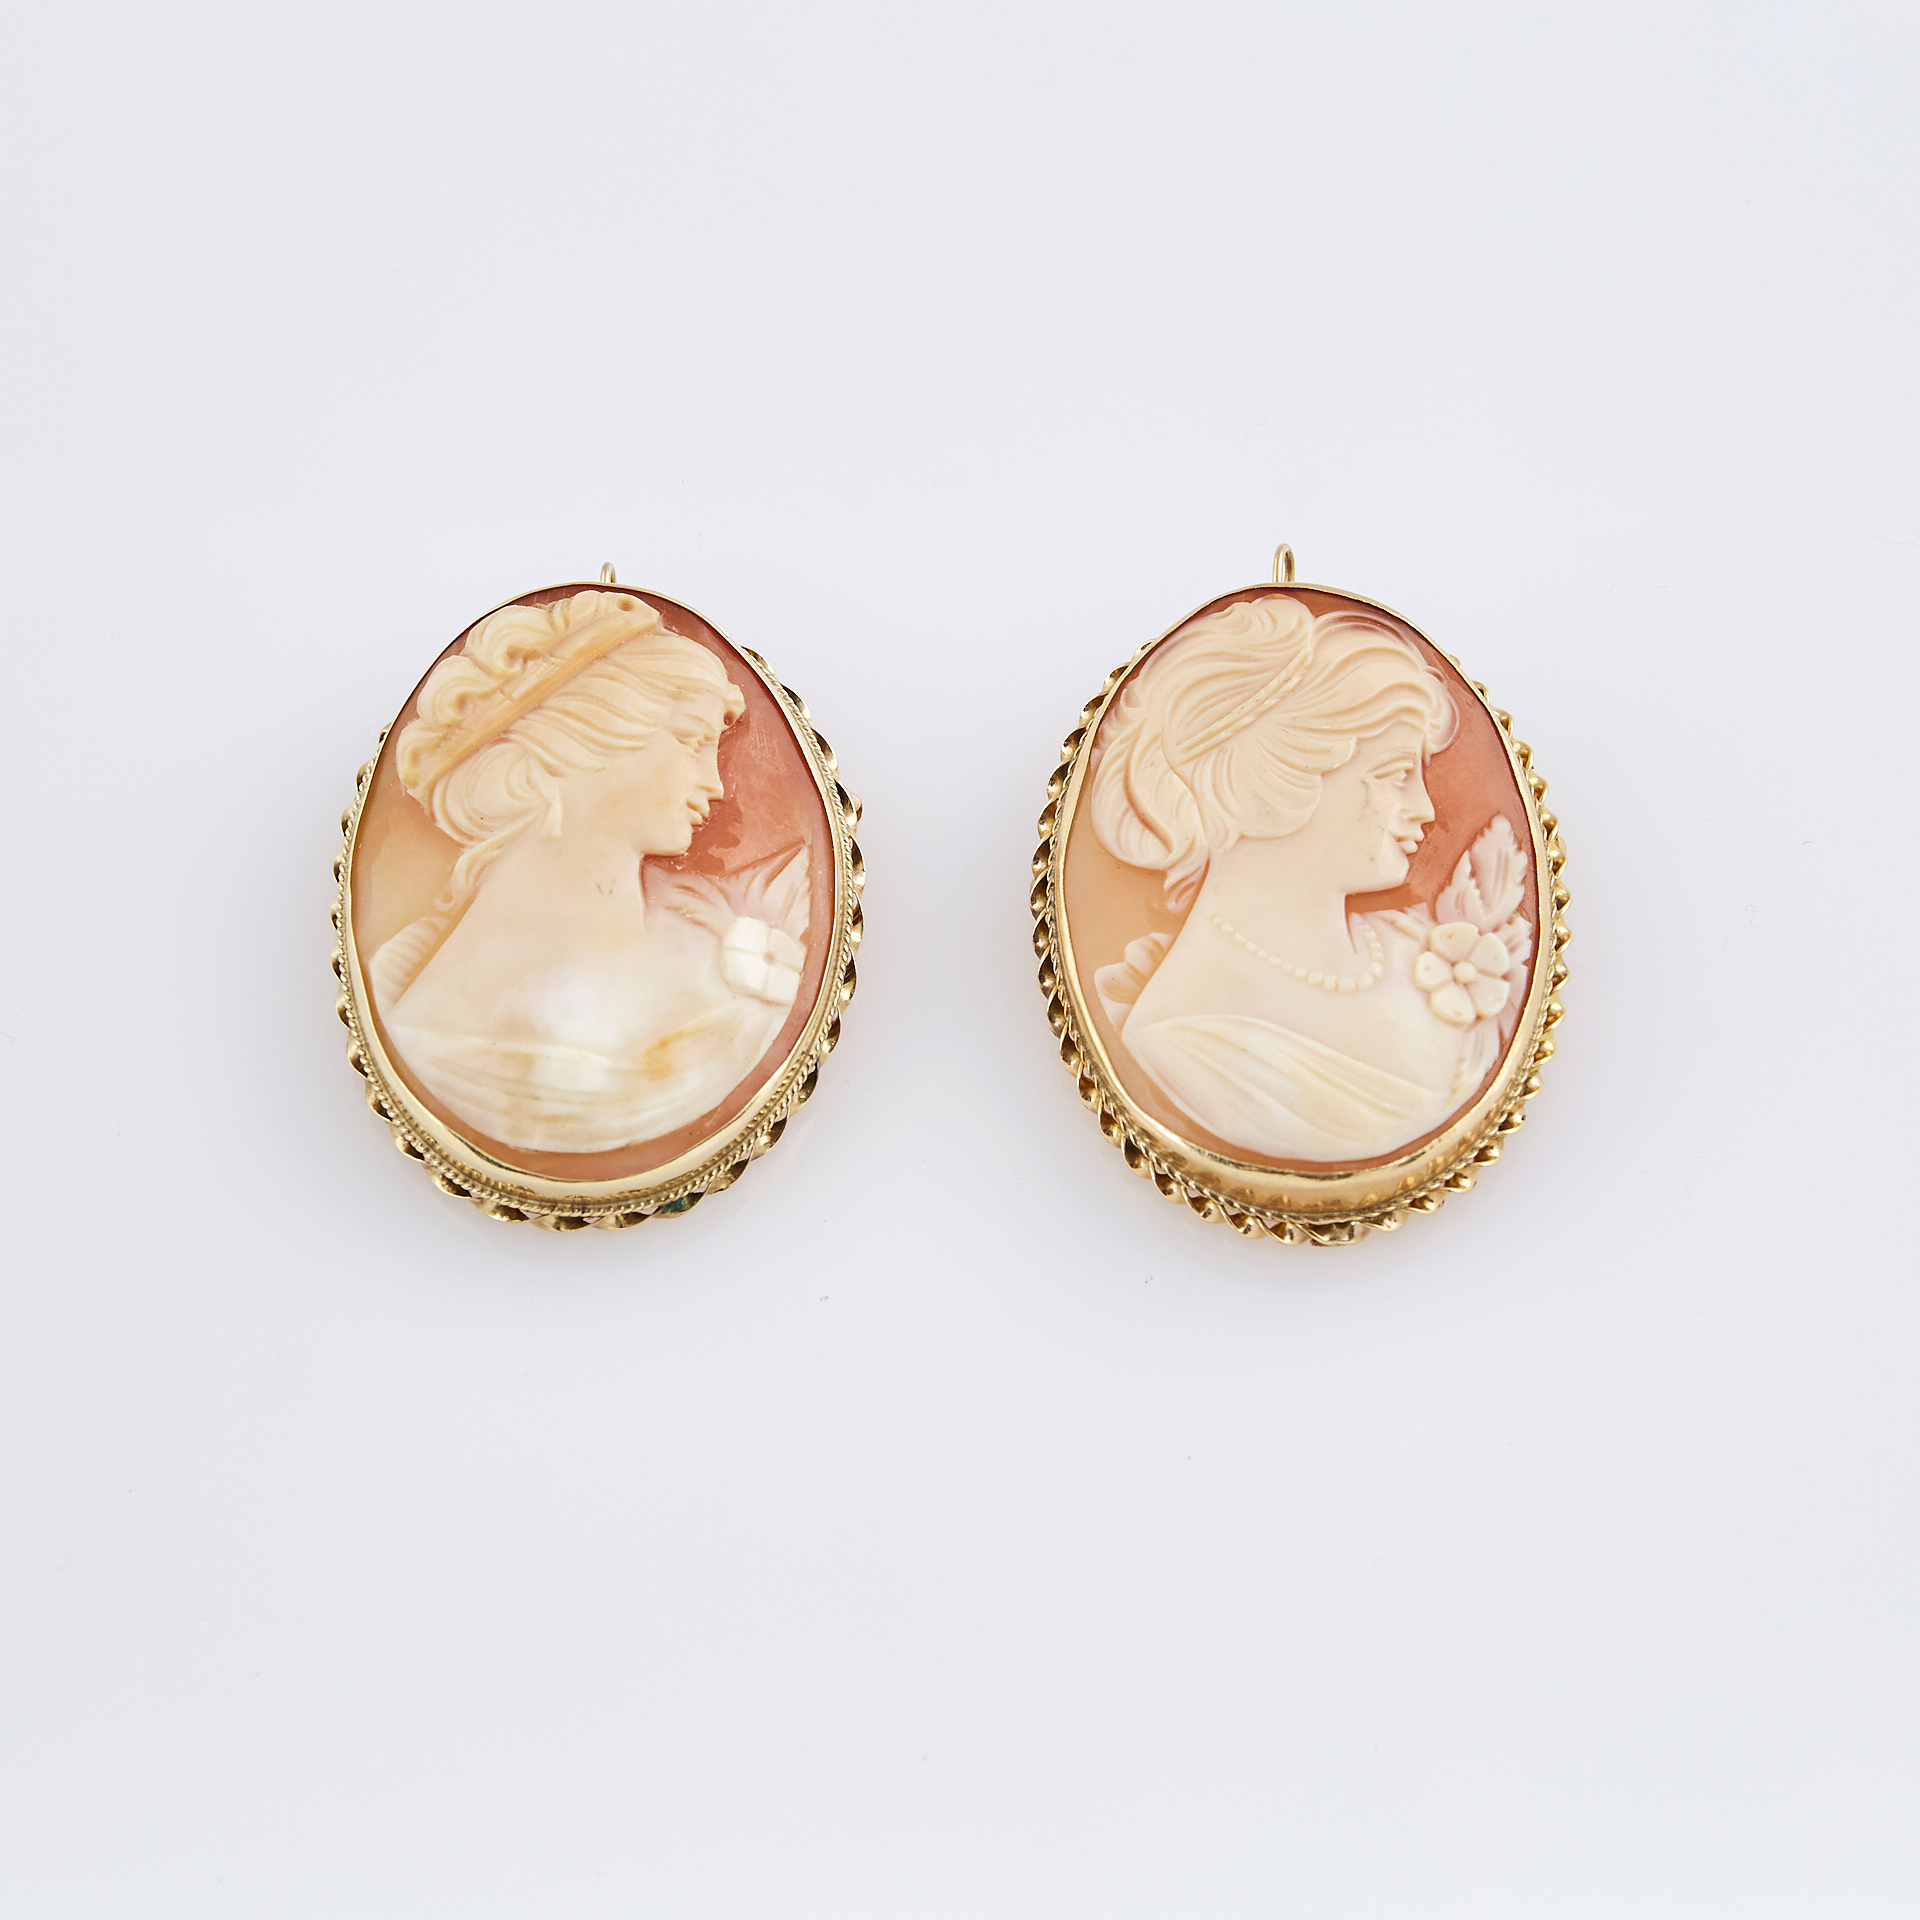 Lot image - Two Gold Cameo Pins, 14K